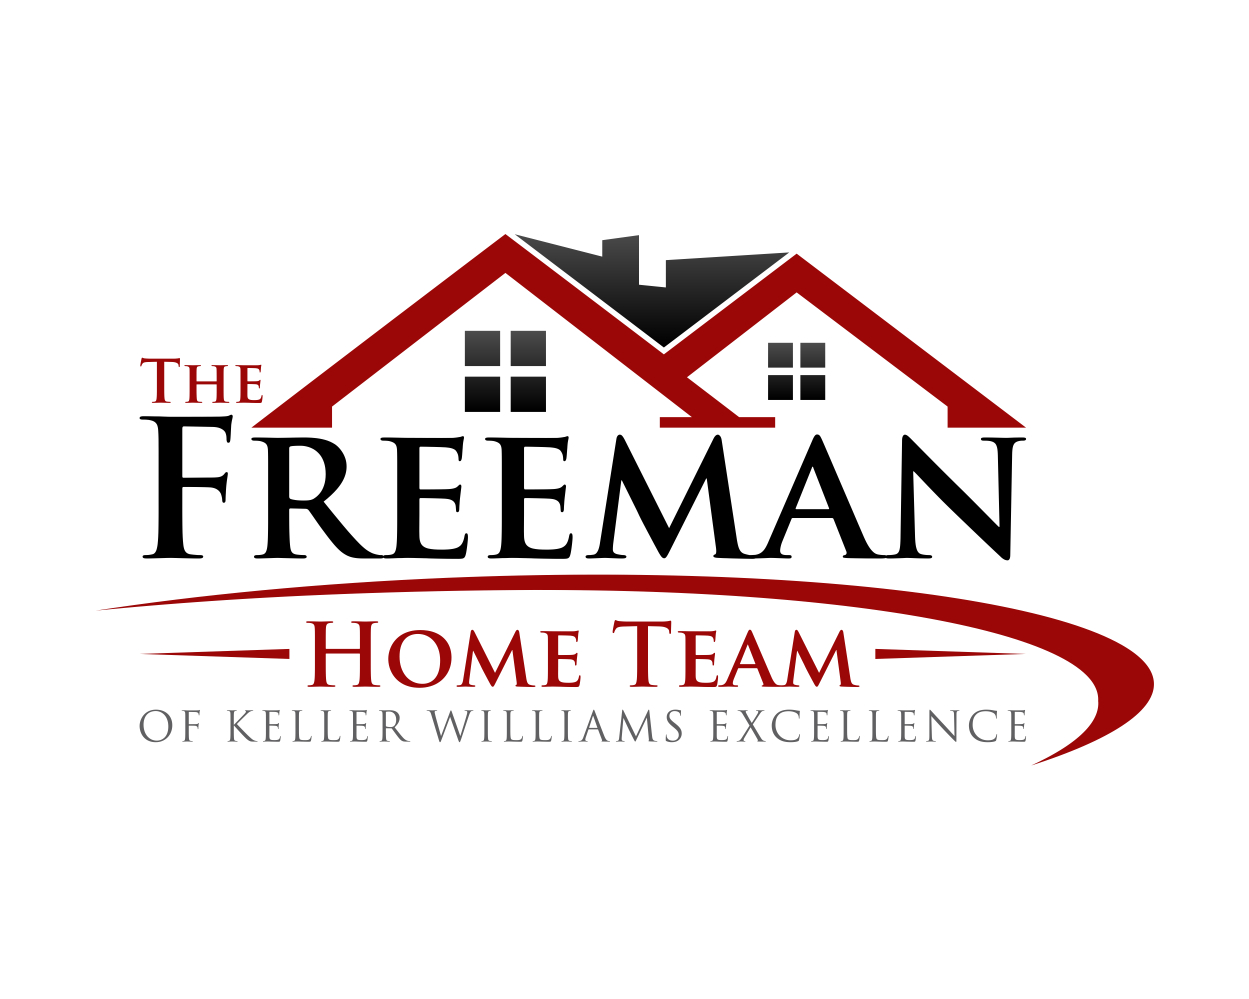 Freeman rudge amp dodd associates st bernard s grange solihull - The Freeman Home Team